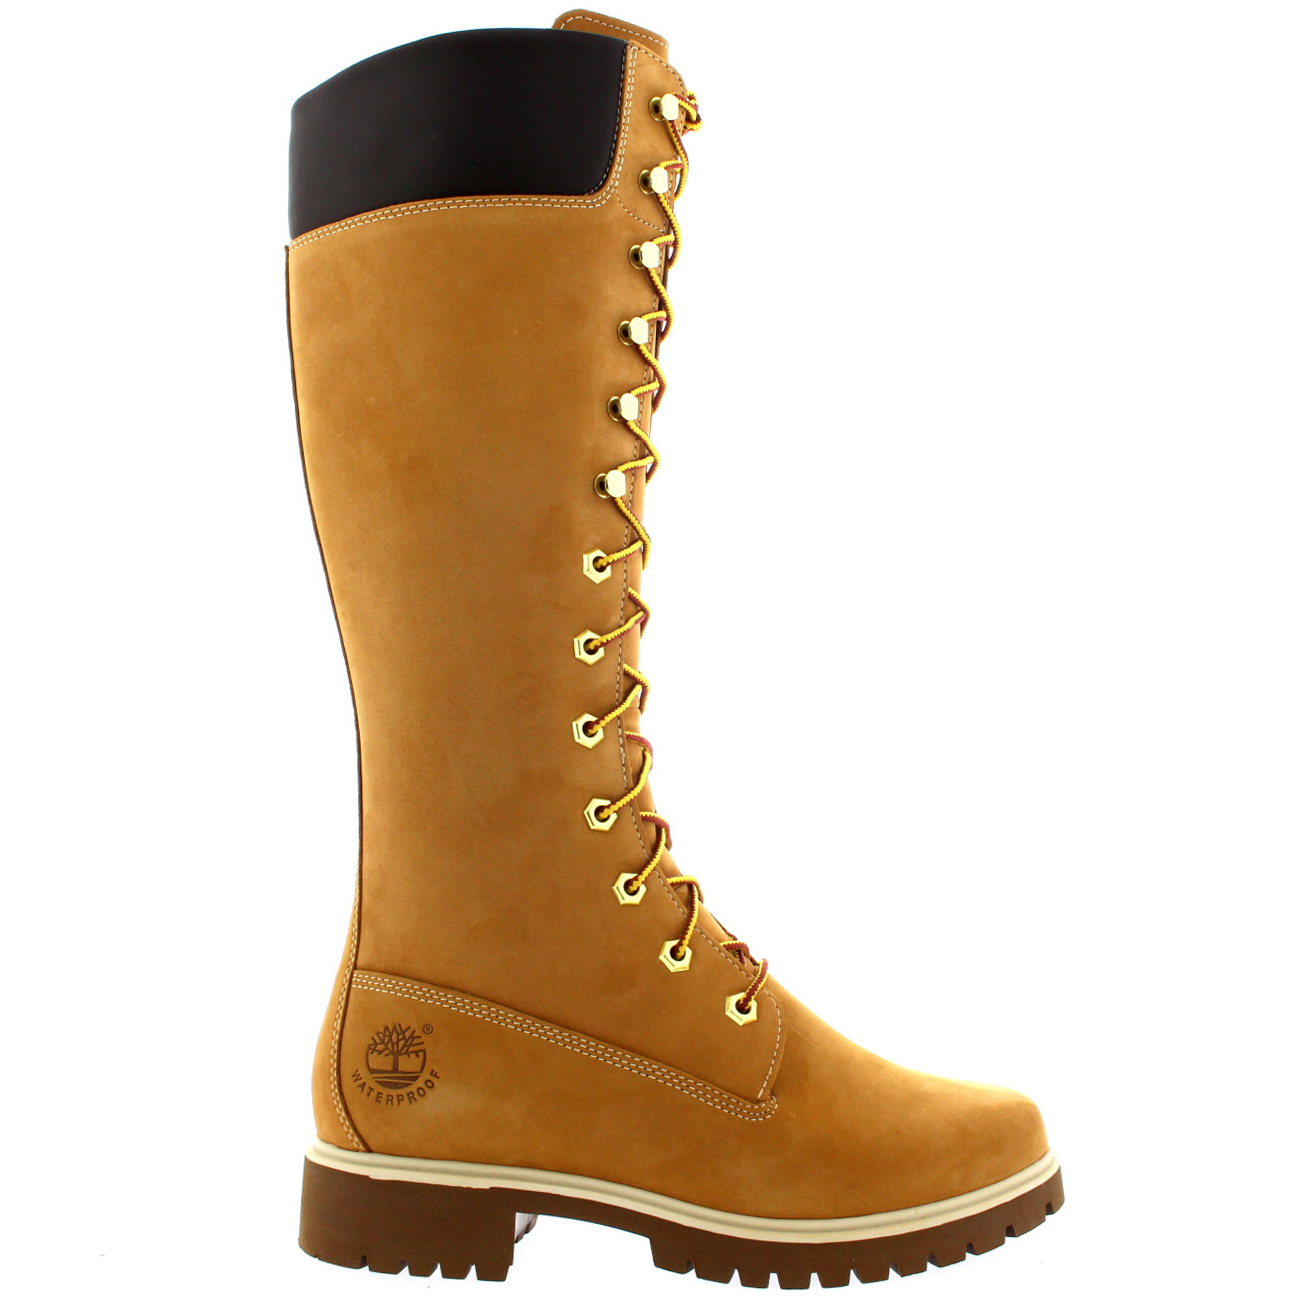 Cool Details About WOMENS LADIES TIMBERLAND KNEE HIGH SNOW FUR WATERPROOF